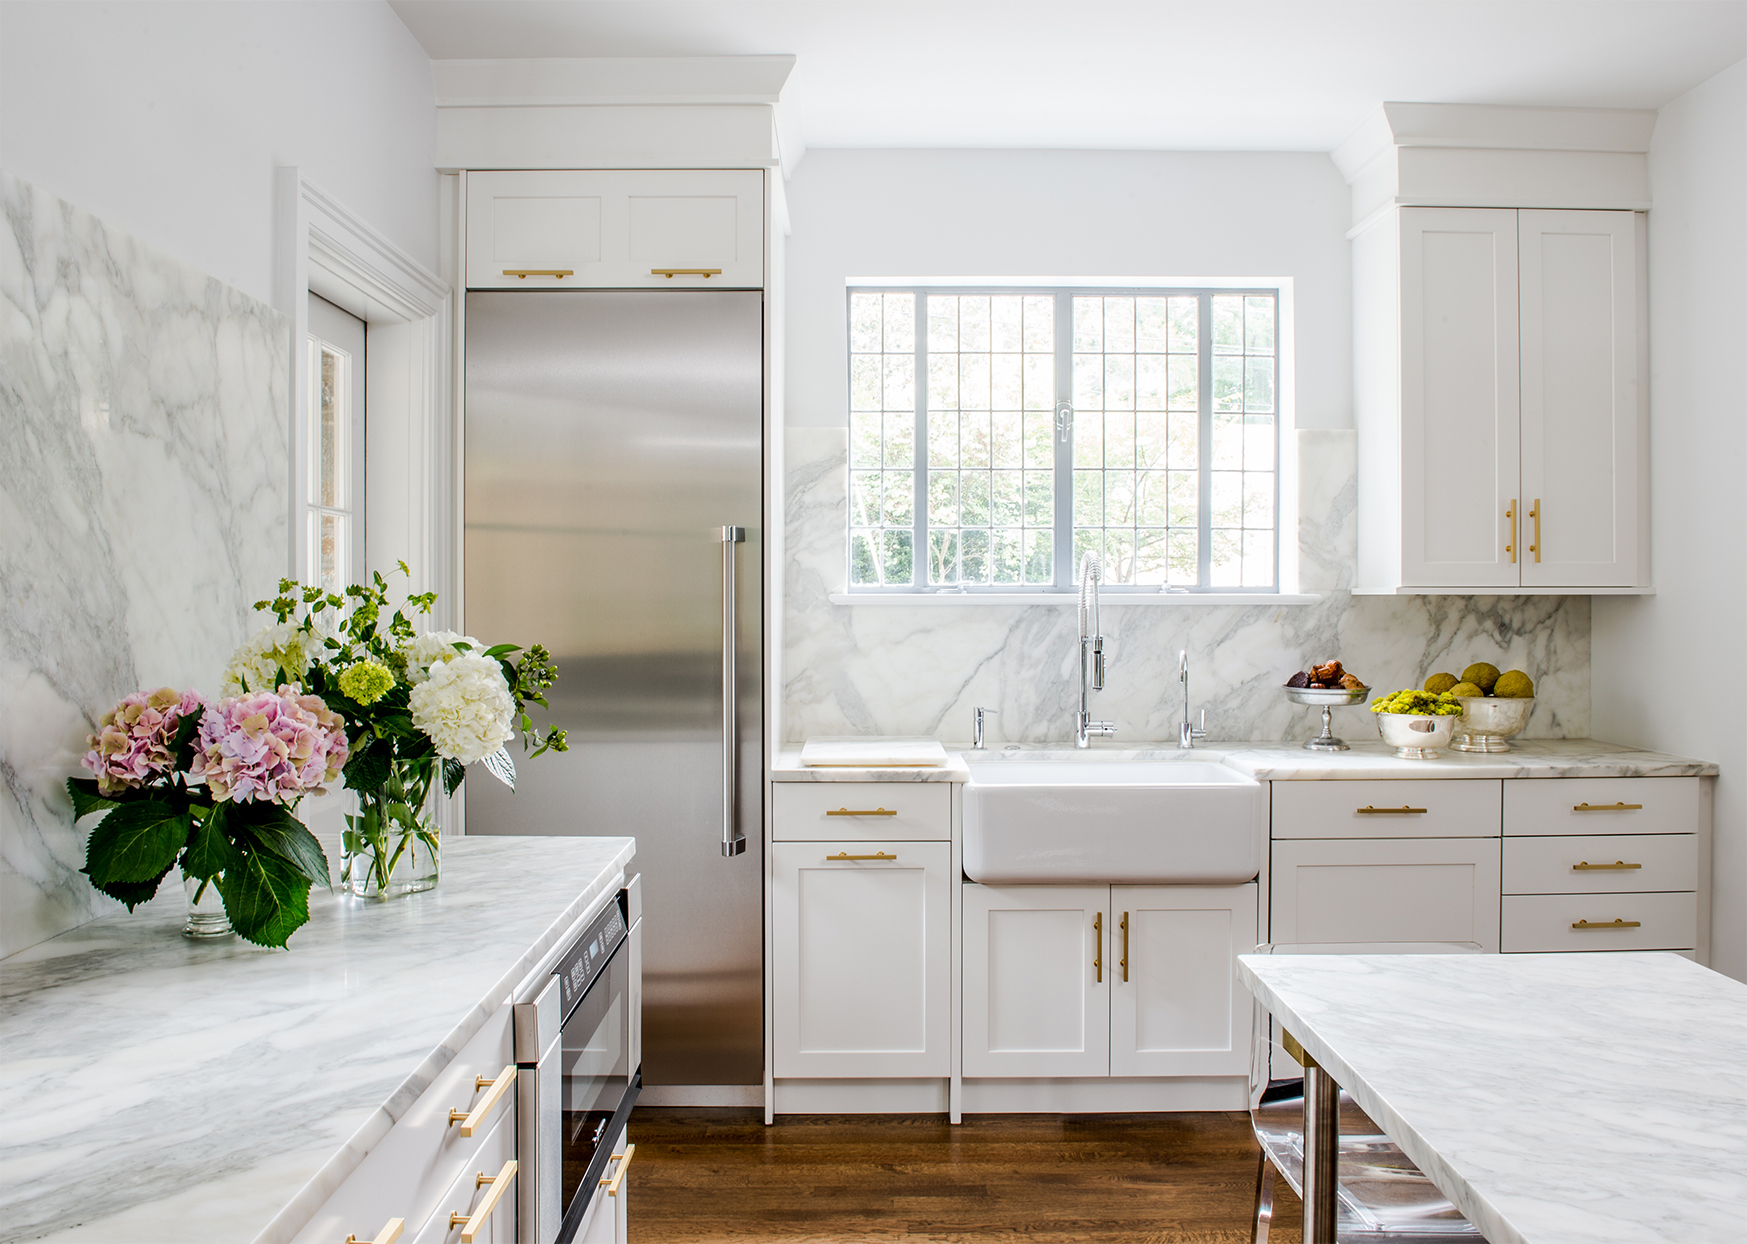 neutral-colored kitchen with marble slab backsplash